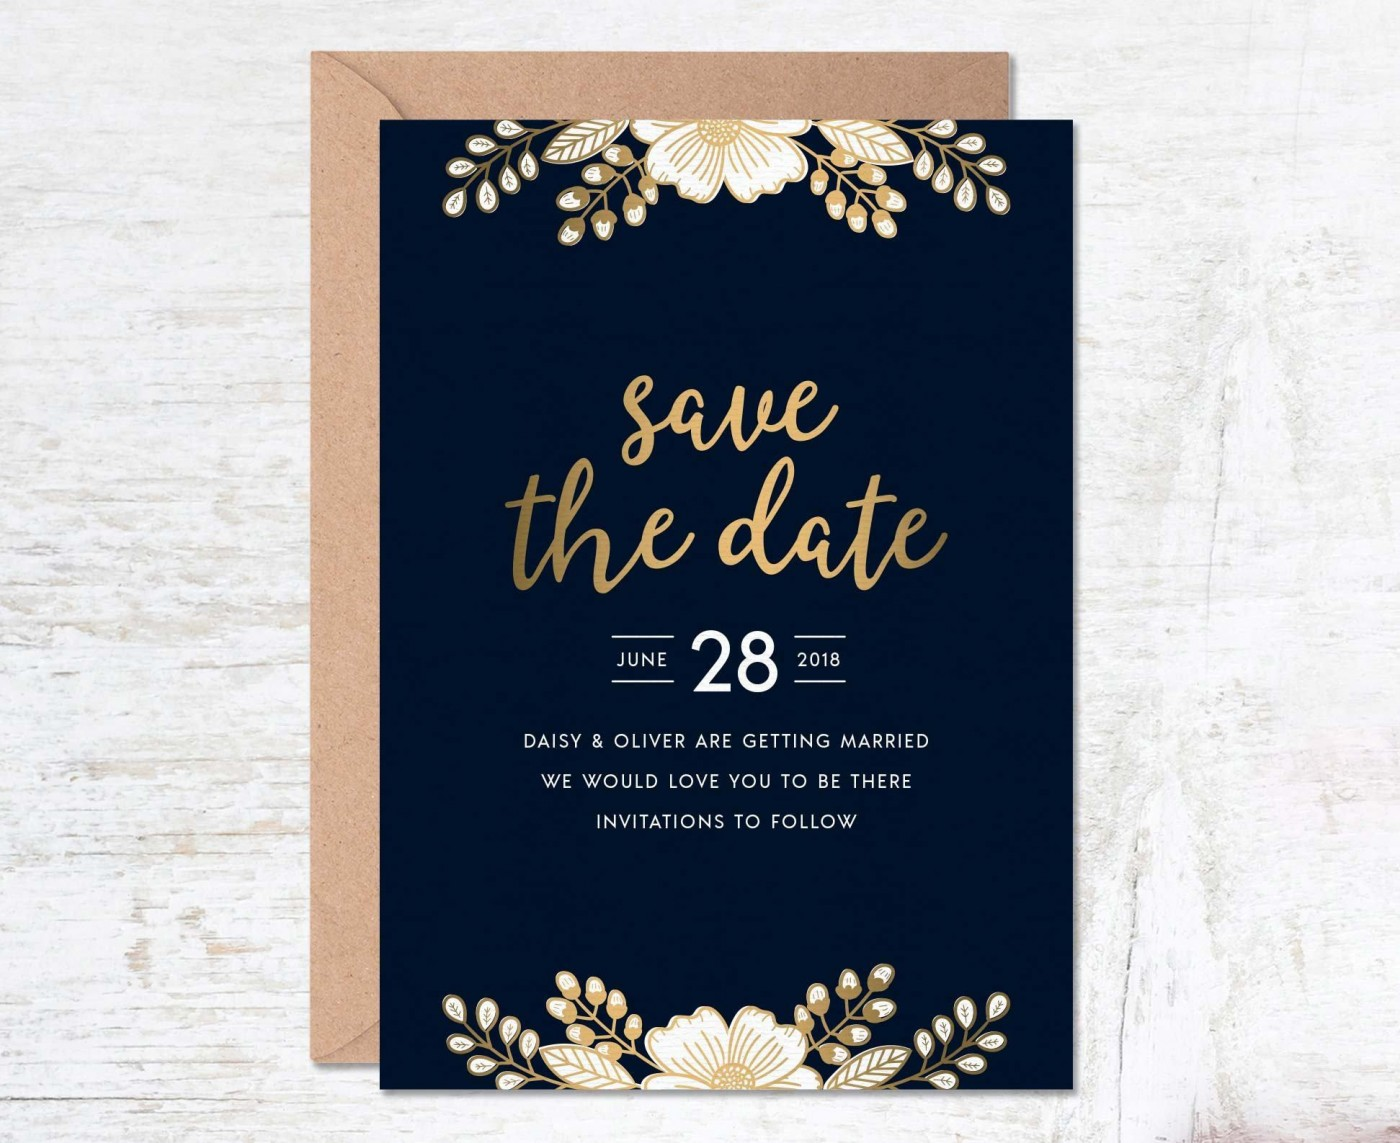 000 Unusual Free Save The Date Birthday Postcard Template Photo 1400